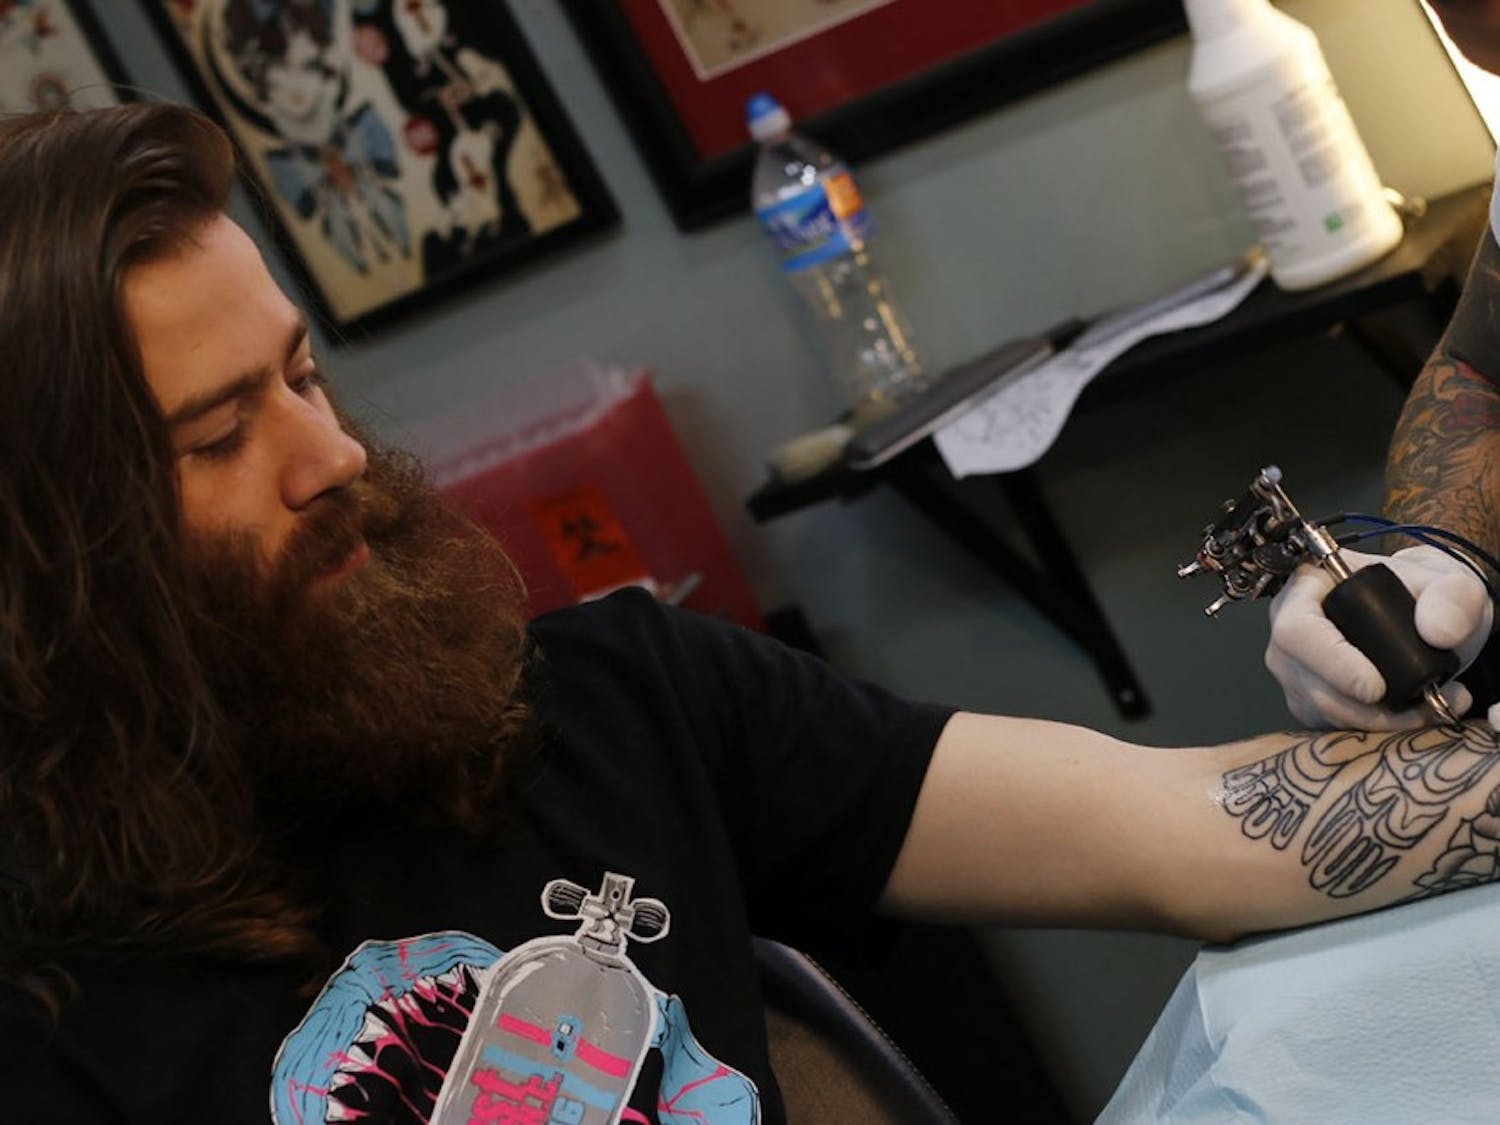 Hayden Fitzgerald watches as Mike Wheeler works on his tattoo.